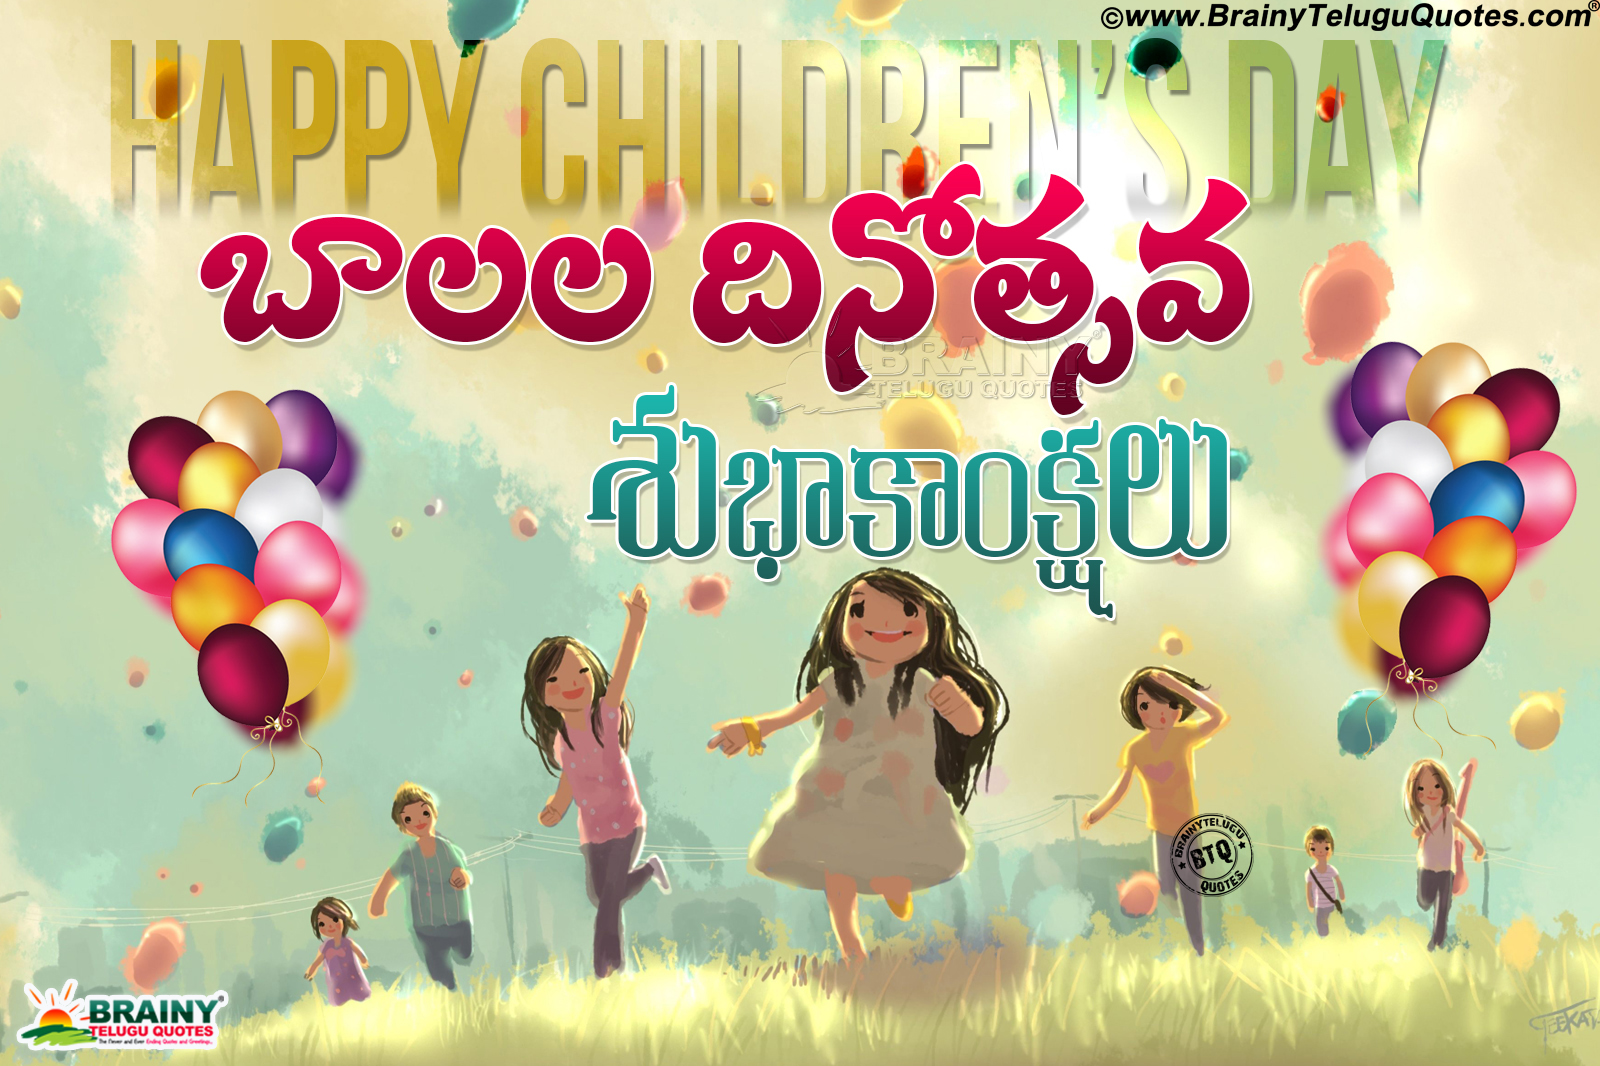 Happy Childrens Day Greetings In Telugu November 14th Day